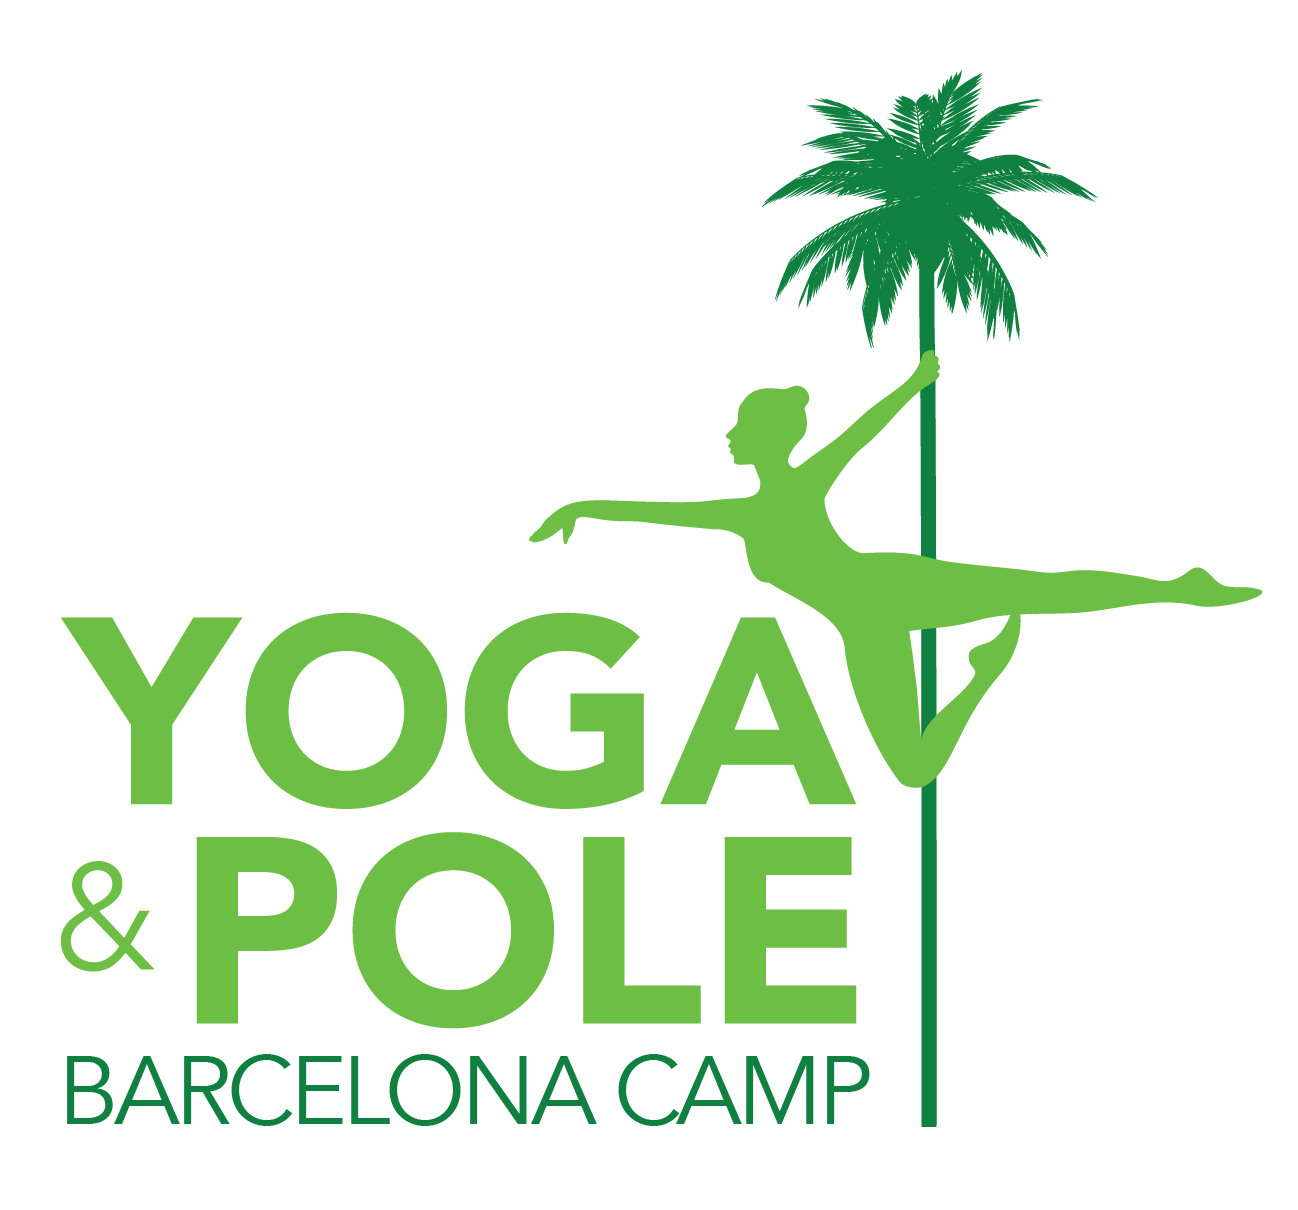 Barcelona urban pole dancing & yoga retreat